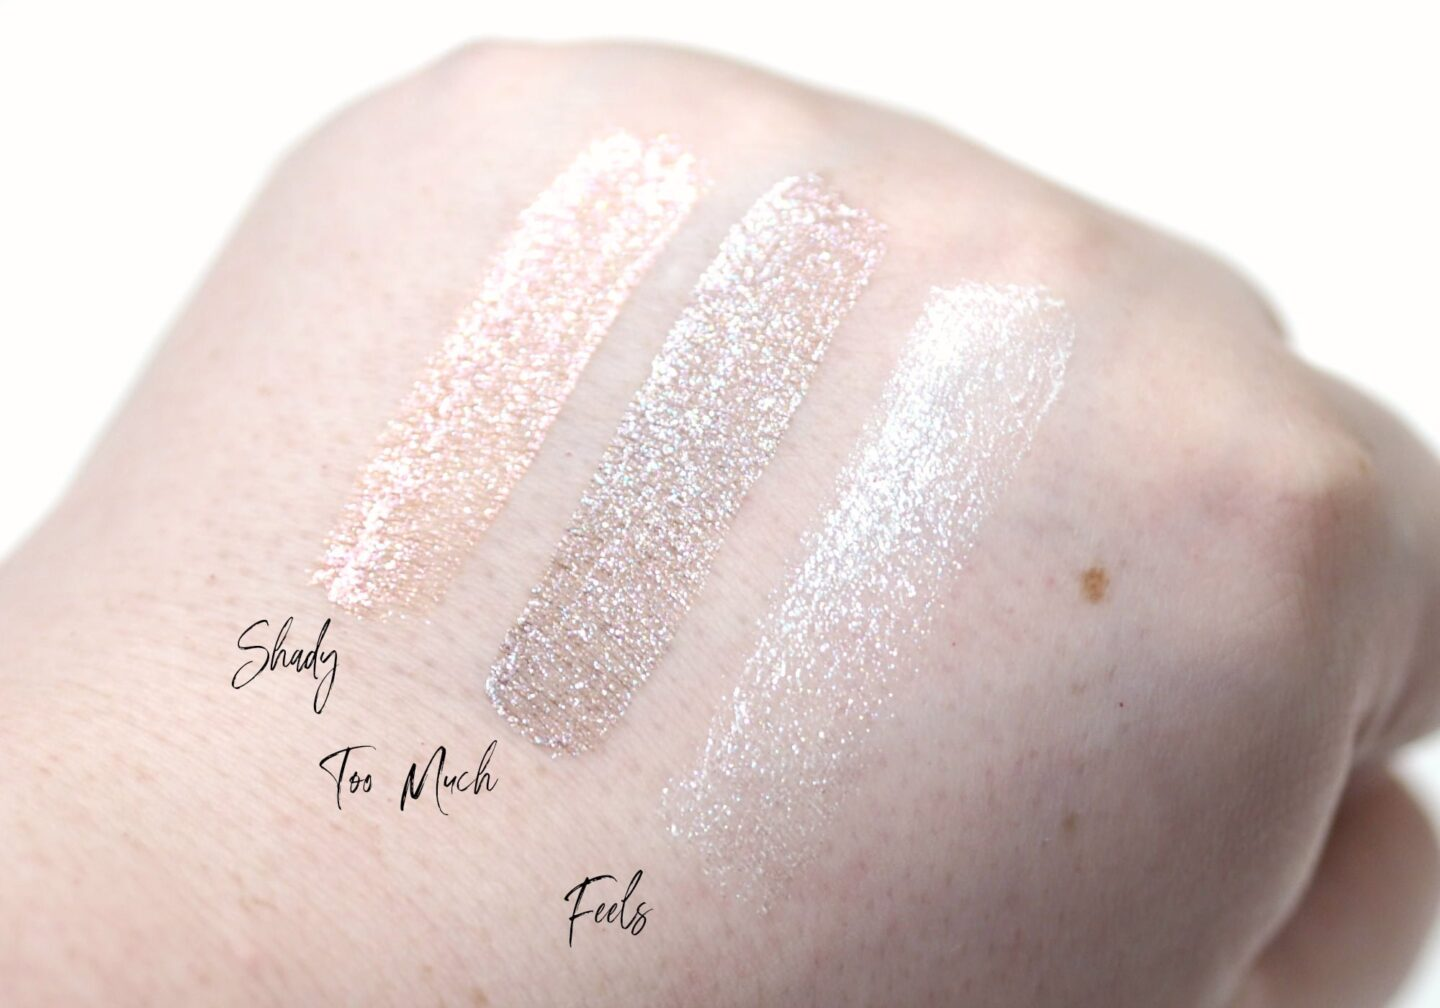 Lottie London Eye Foils - New Shades! Review and Swatches ft Feels Shady Too Much